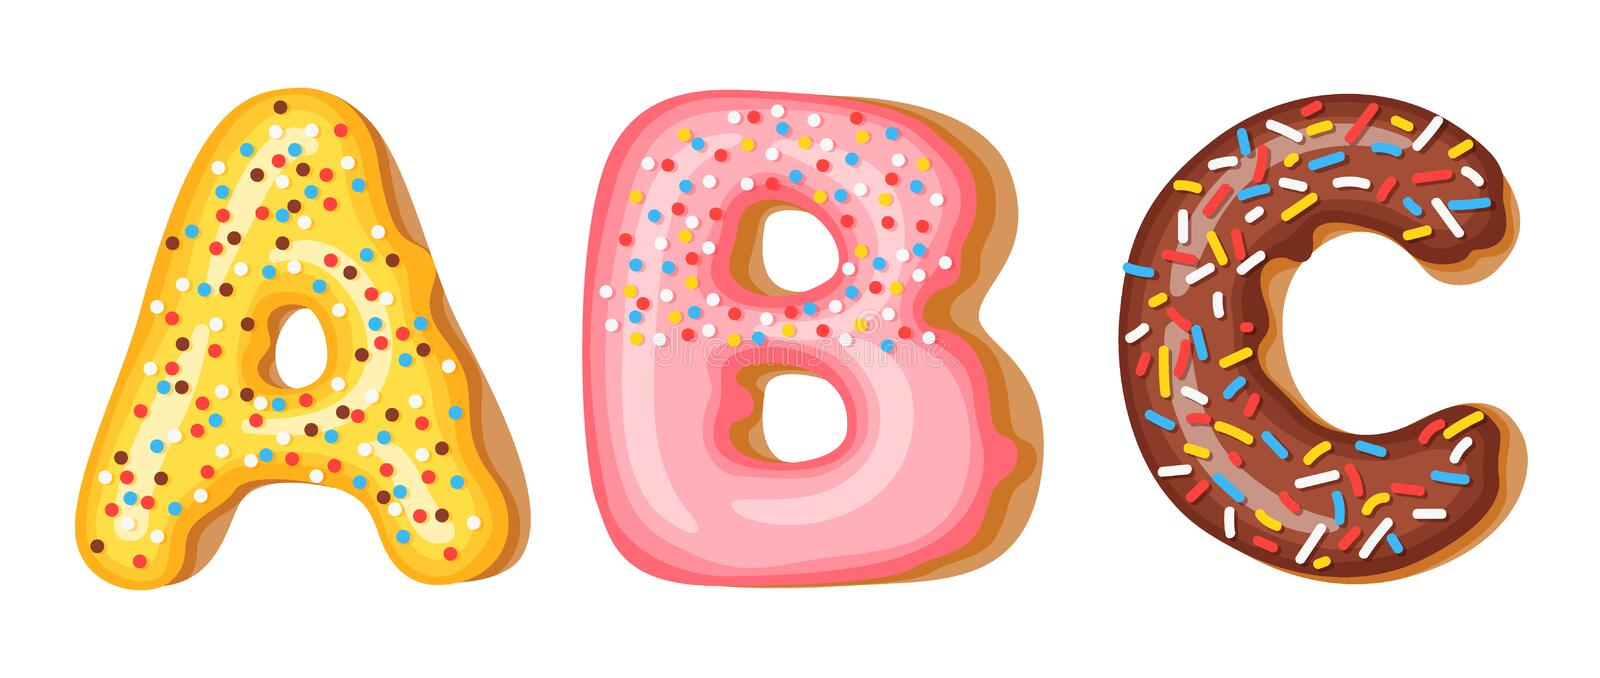 Donut icing upper latters - A, B, C. Font of donuts. Bakery sweet alphabet. Donut alphabet latters A b C isolated on. White background, vector illustration stock illustration